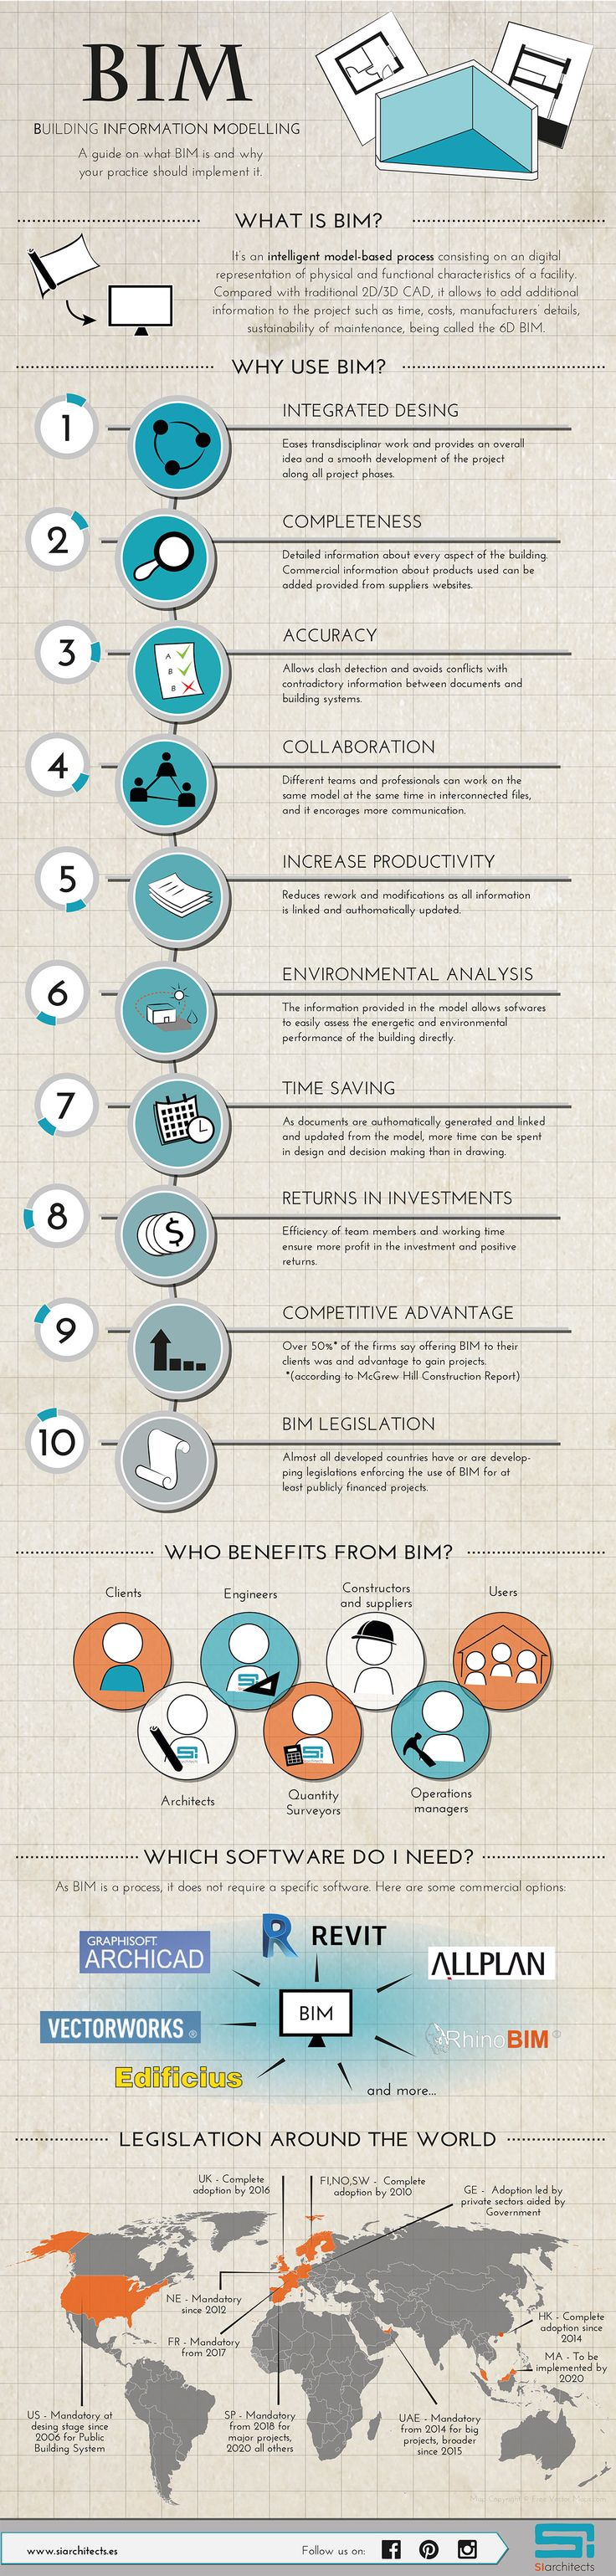 best 20 architecture software ideas on pinterest free infographic about bim building information system definition benefits and keys for architectural and engineering practices by si architects www